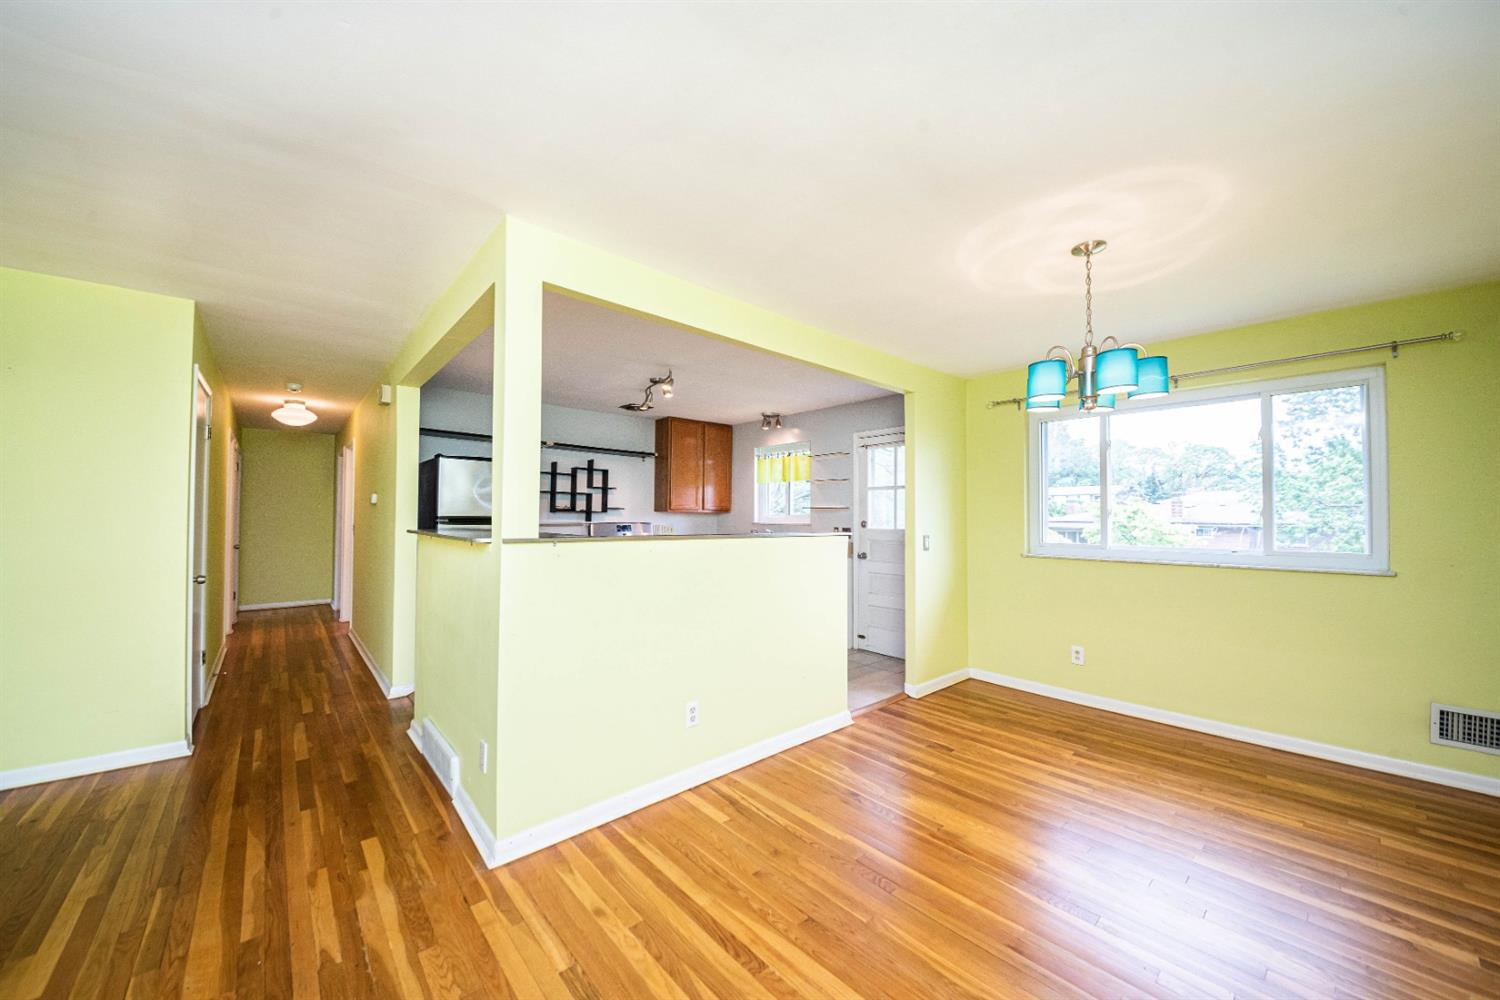 Photo 3 for 3621 Fieldcrest Dr Westwood, OH 45211